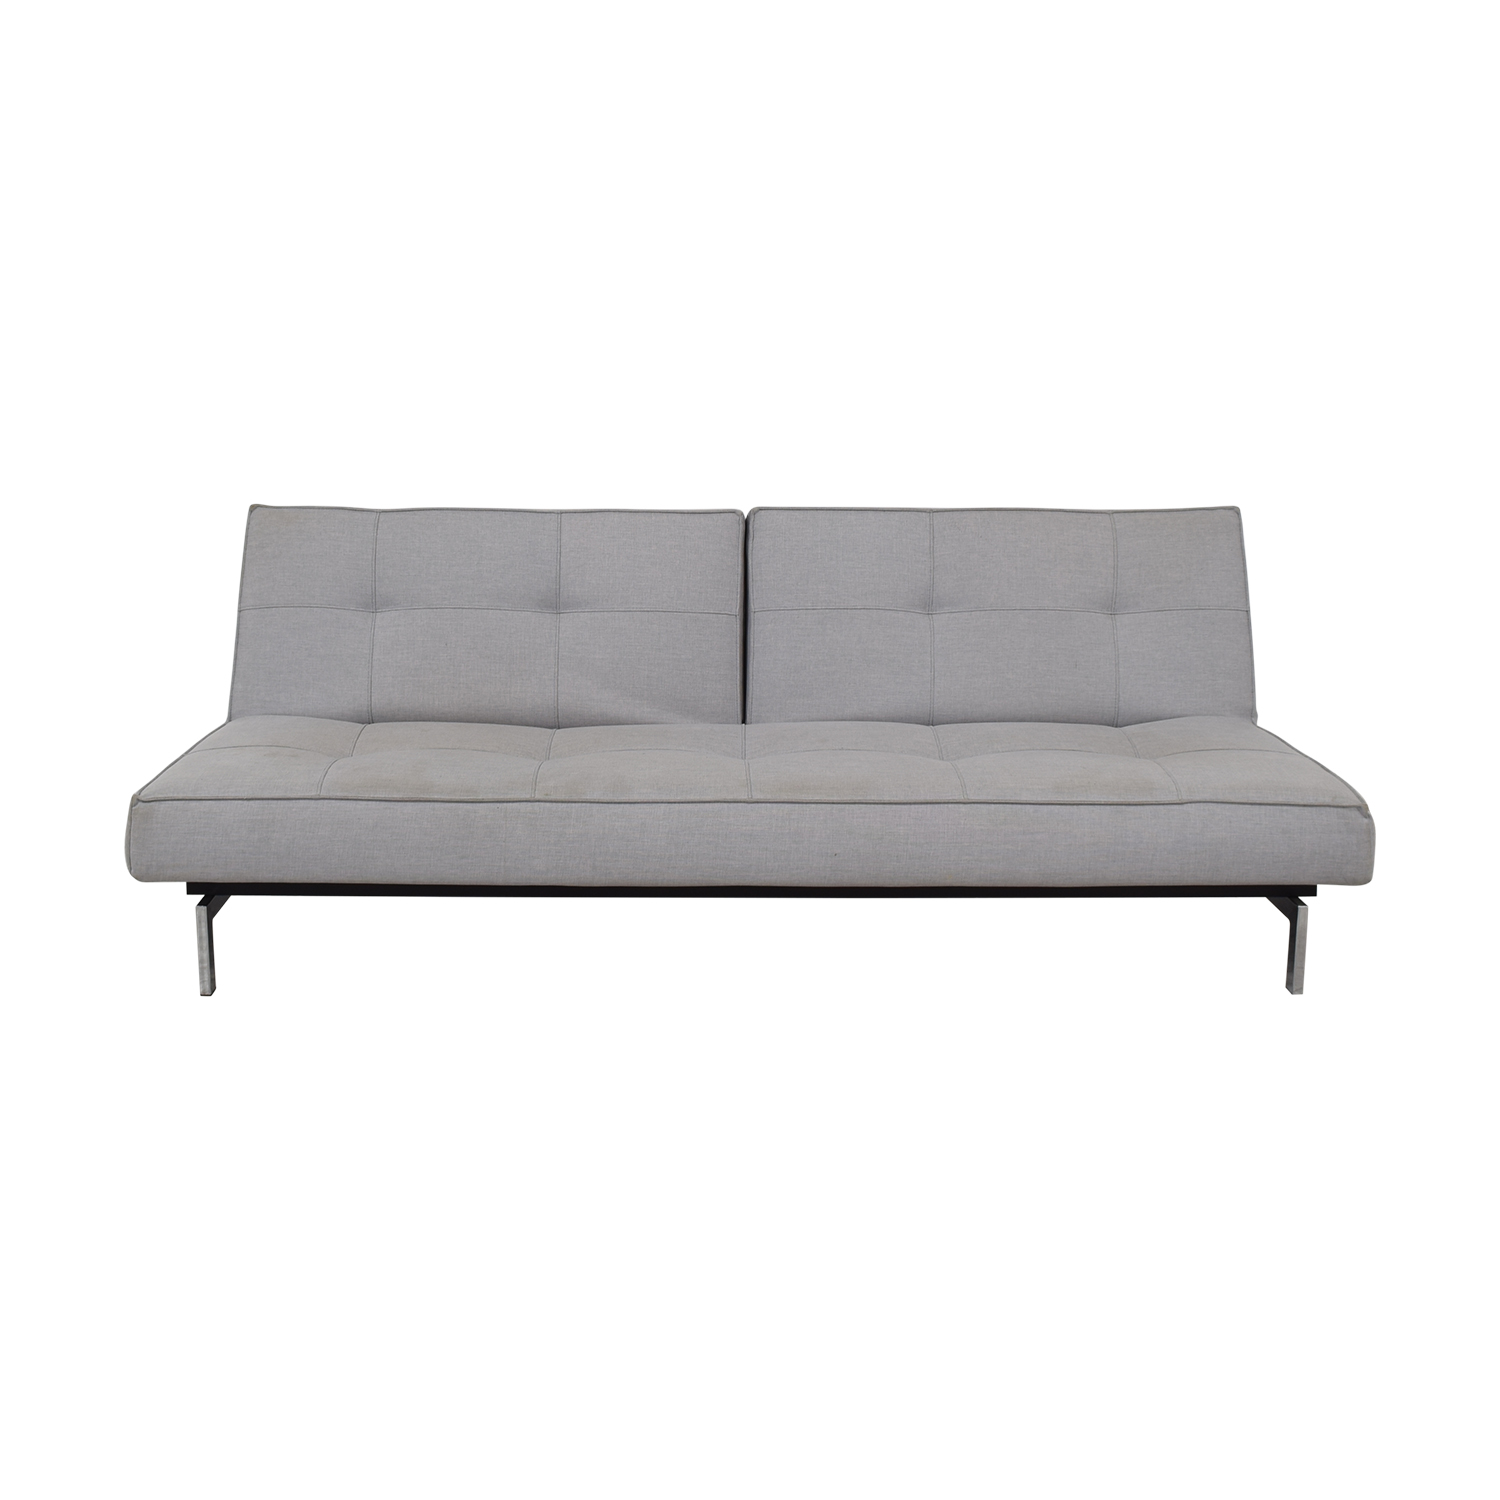 Innovation Living Innovation Living Splitback Sofa Bed for sale